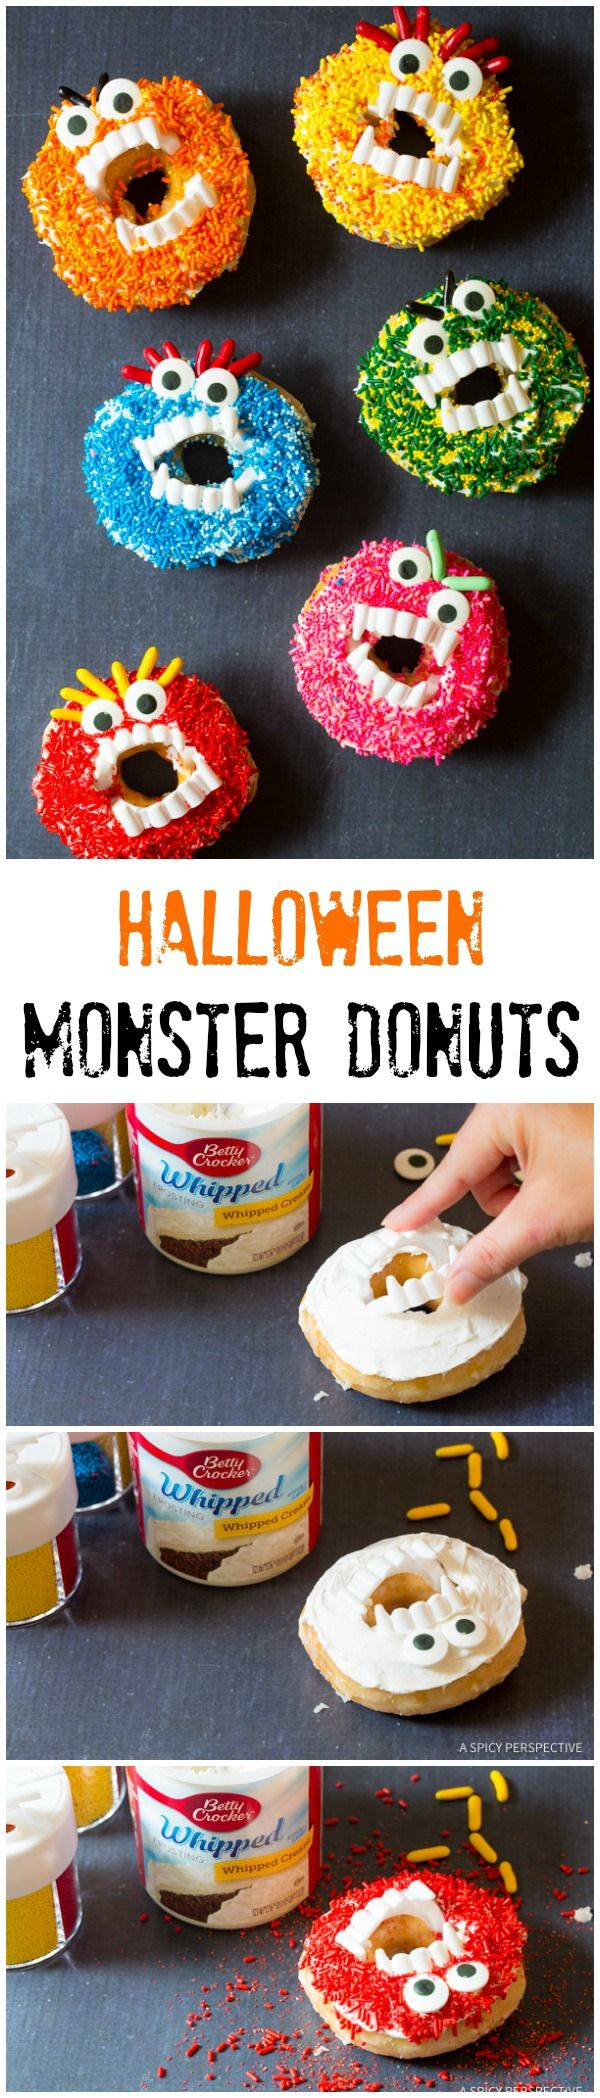 Kid-Friendly Halloween Monster Donuts | ASpicyPerspective.com @spicyperspectiv